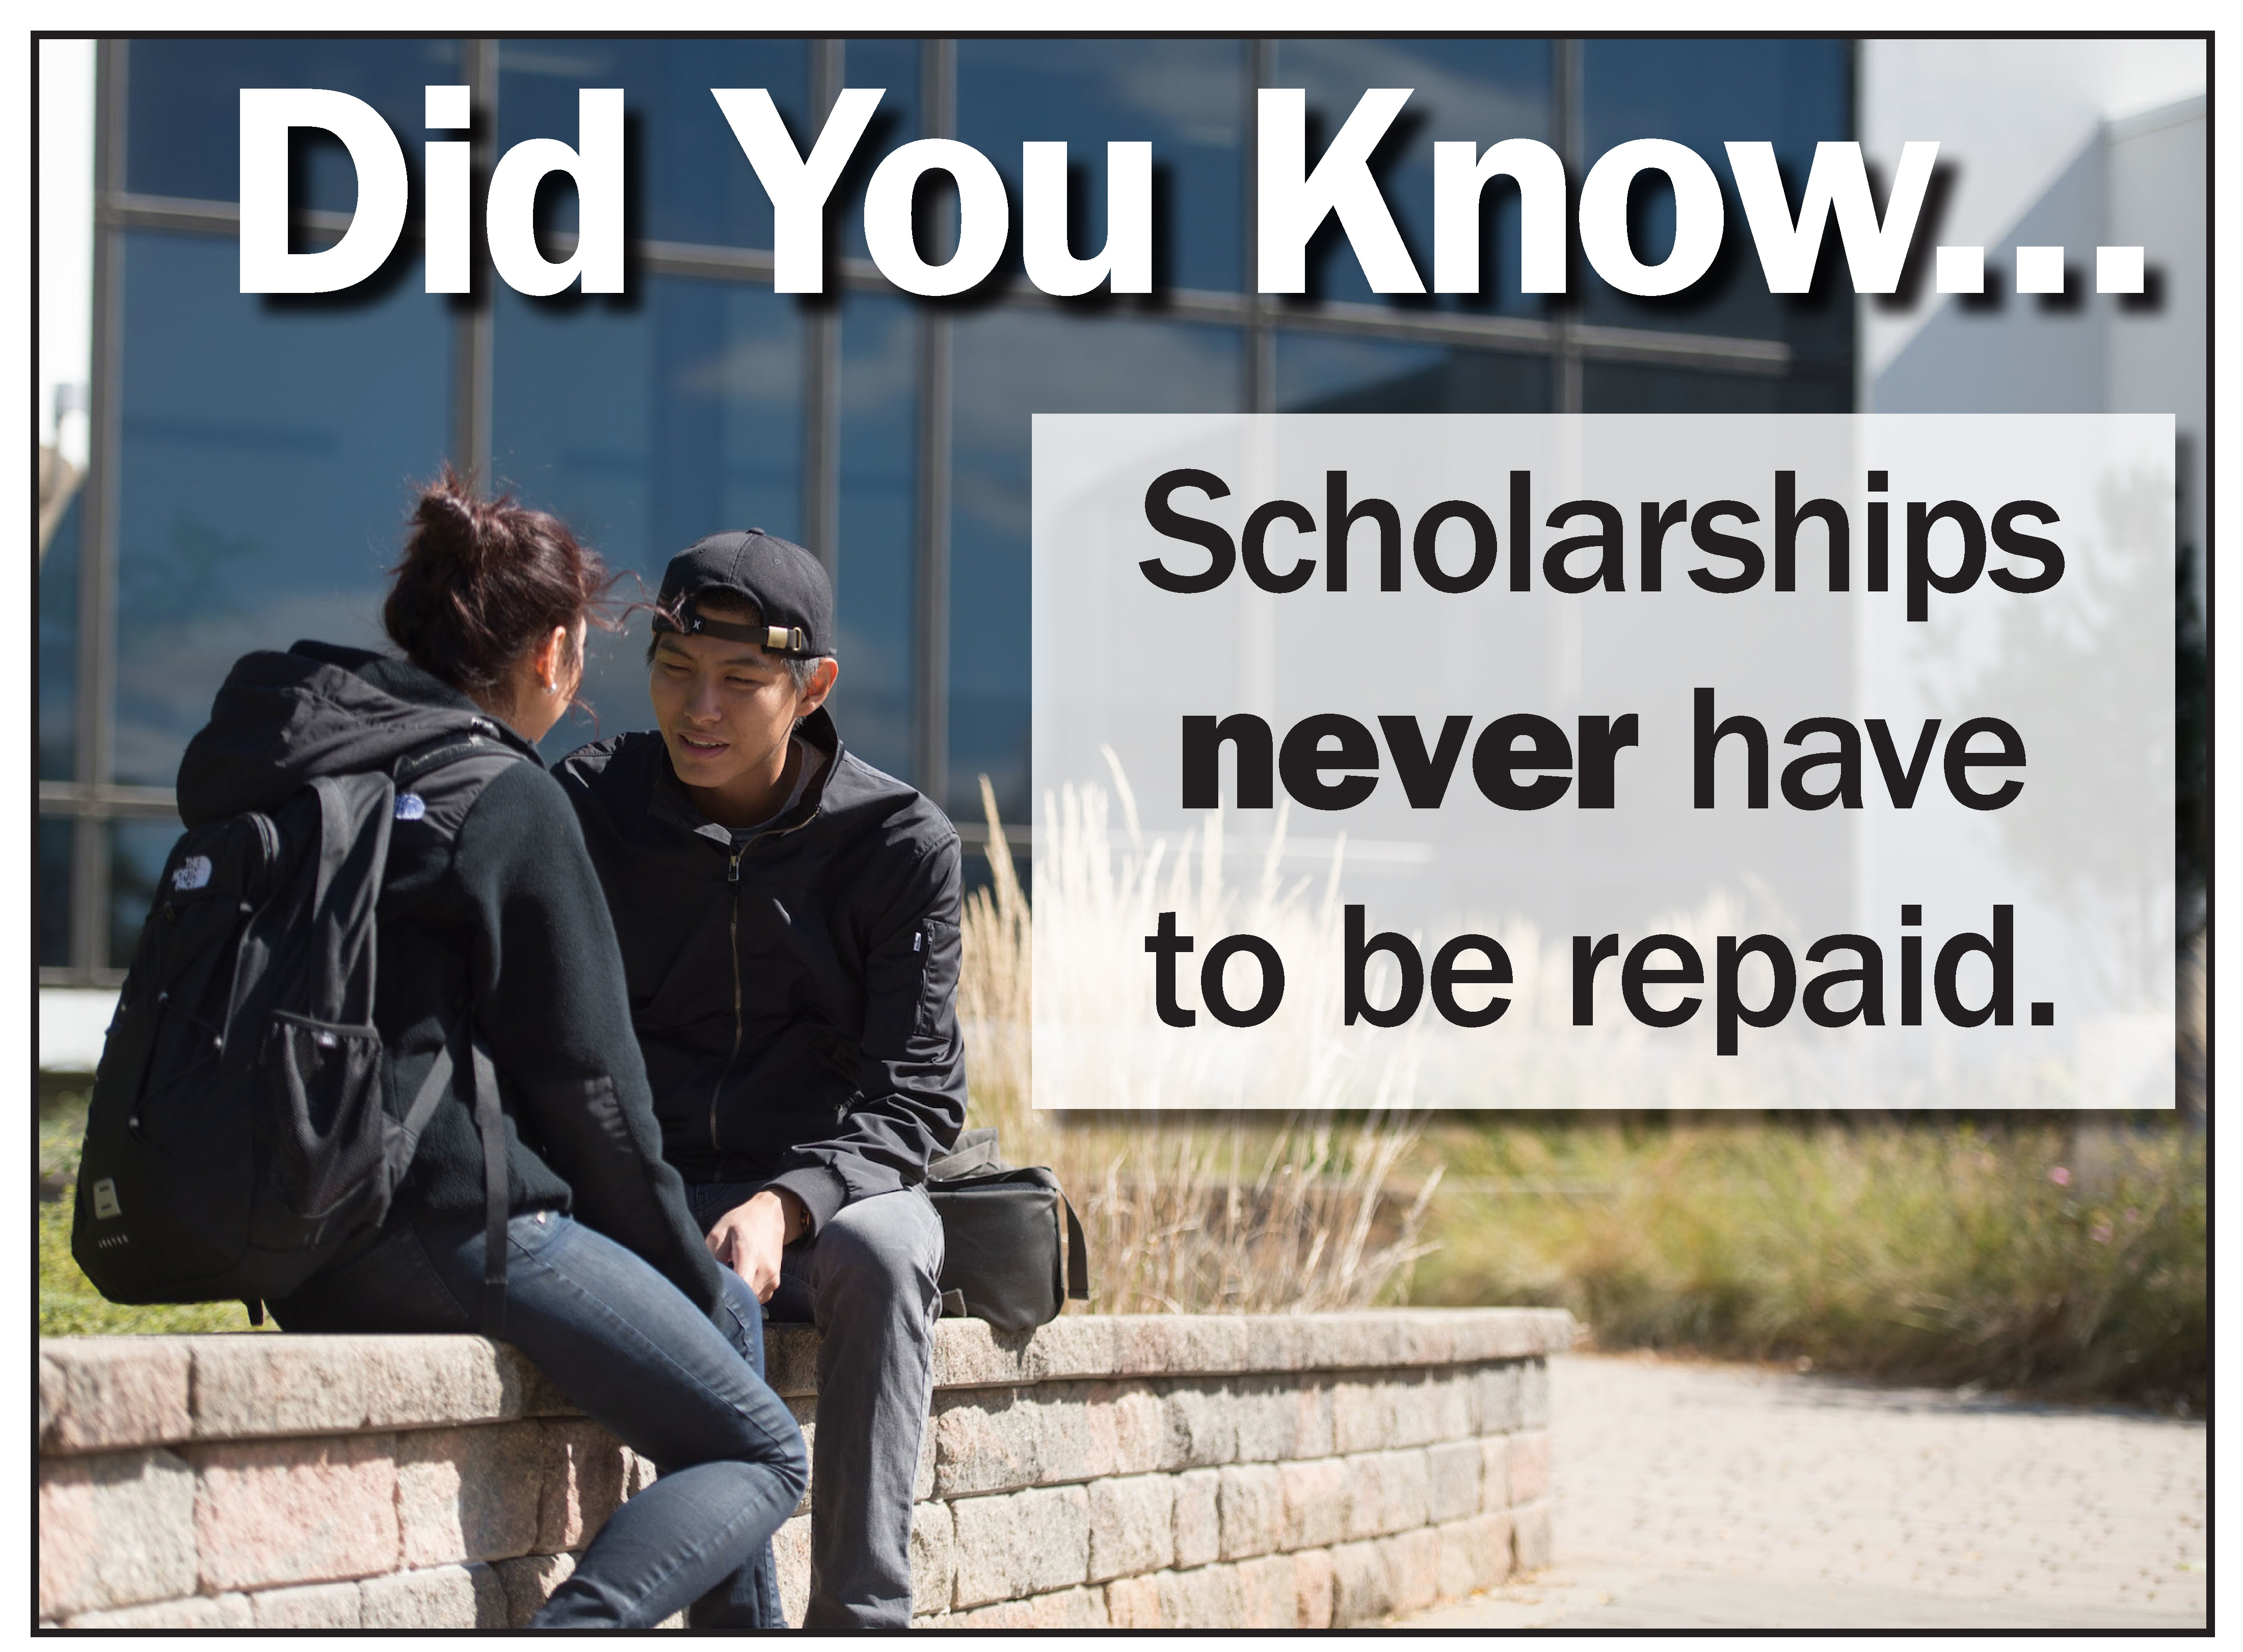 common scholarship myths busted jjc joliet junior college scholarships never have to be repaid did you know